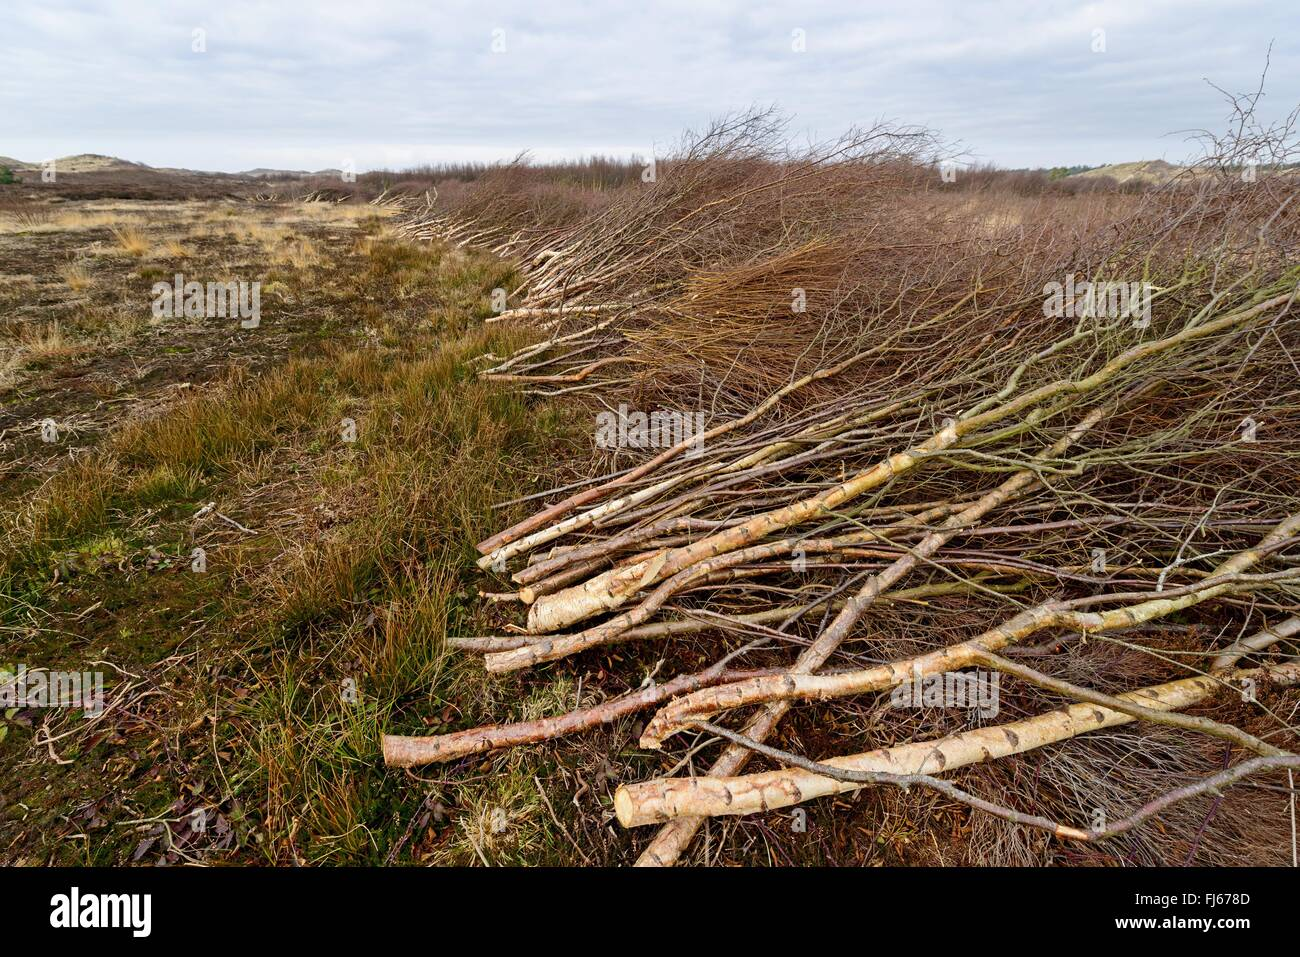 cut off birch branches in heath landscape, Netherlands, Texel - Stock Image